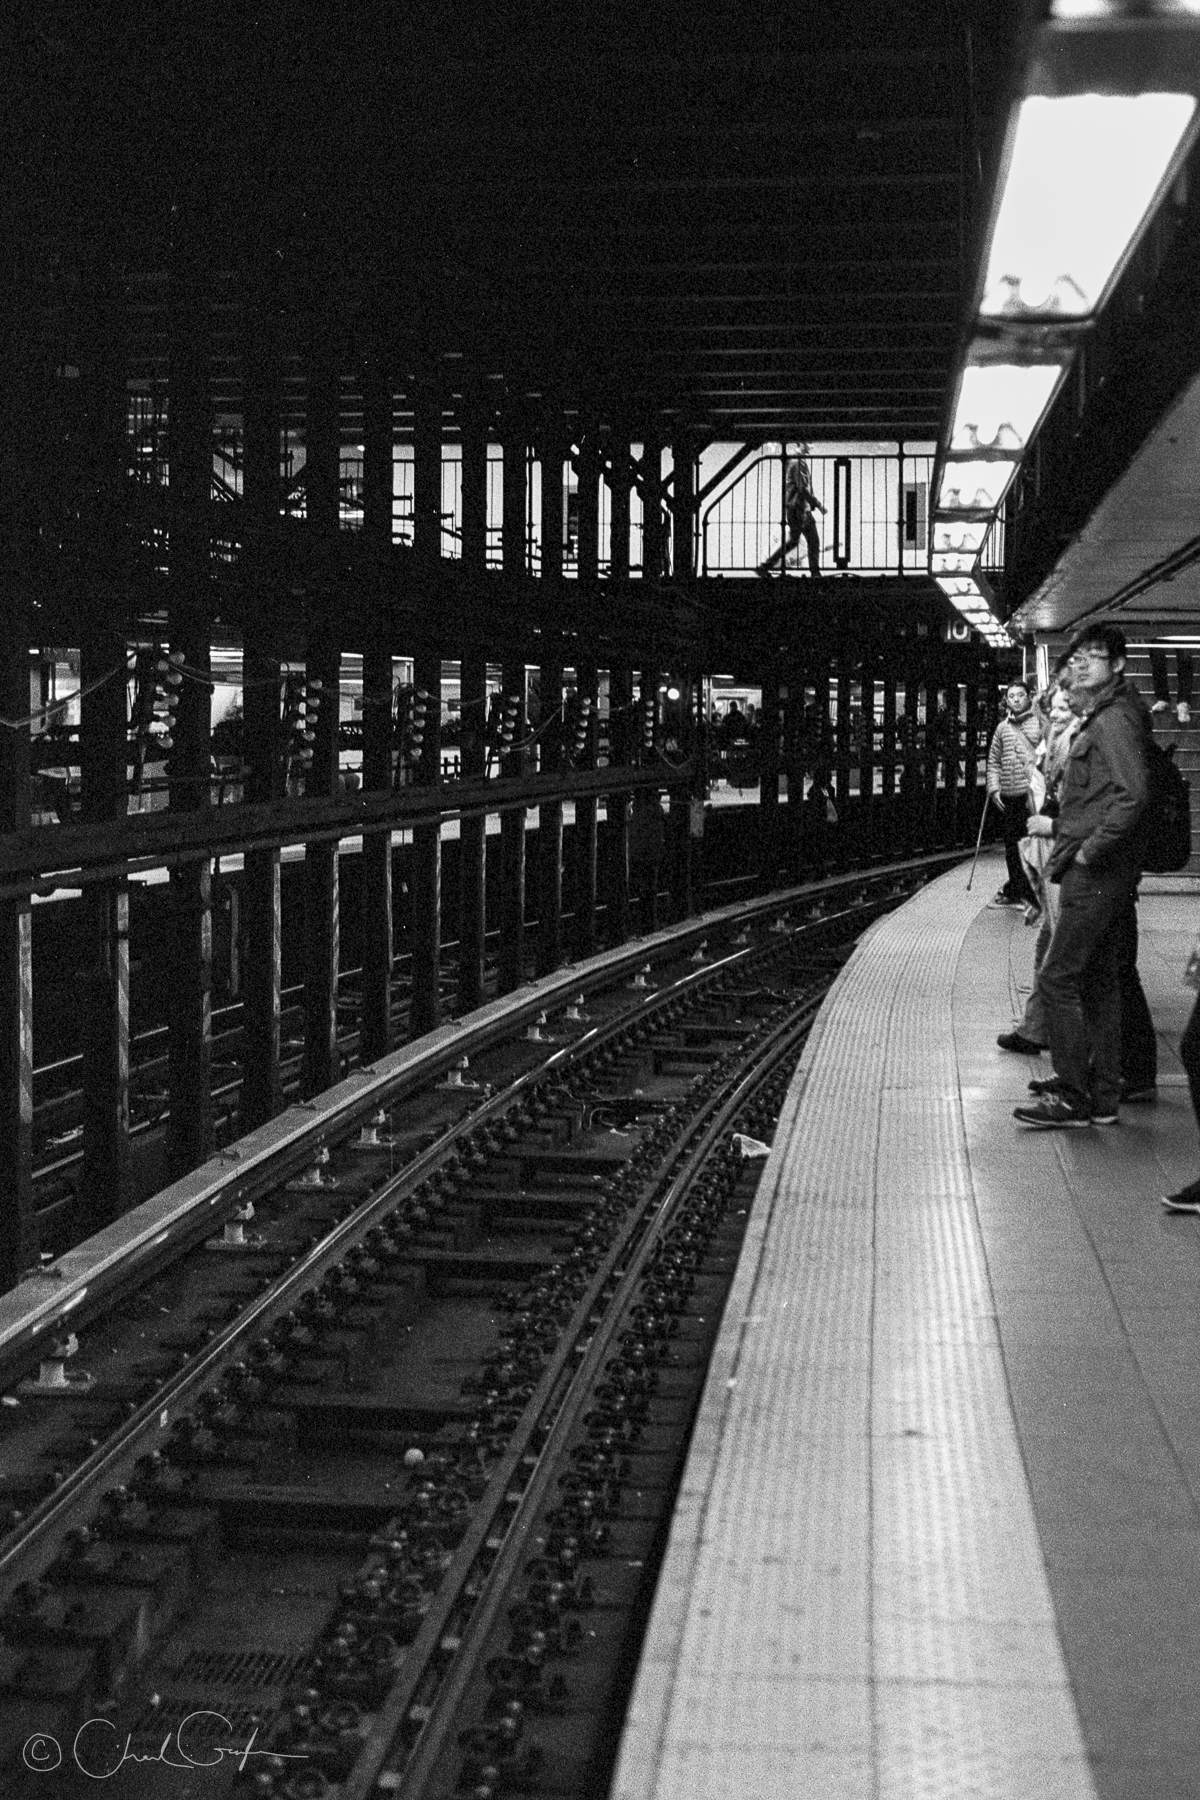 Waiting on a Train at Union Station (Image by Chad Gayle)